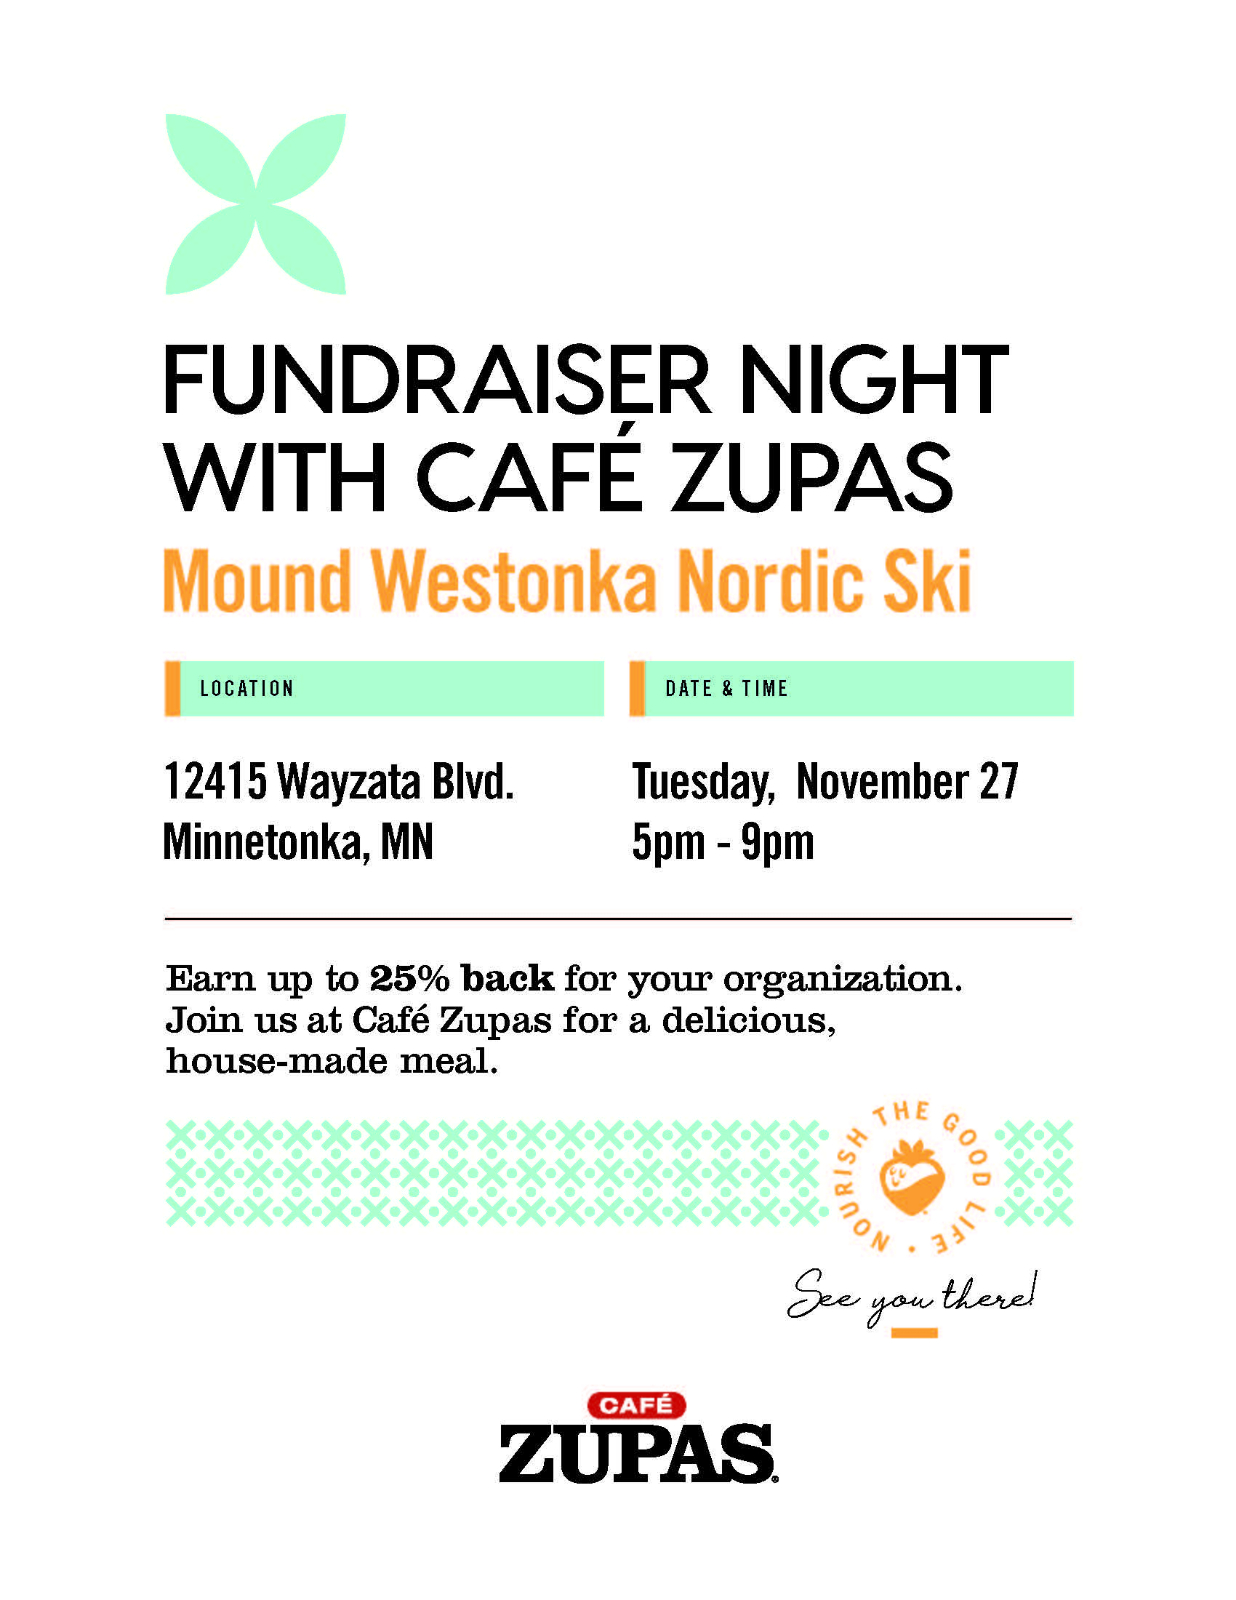 Support the Nordic Ski Fundraiser at Cafe Zupas